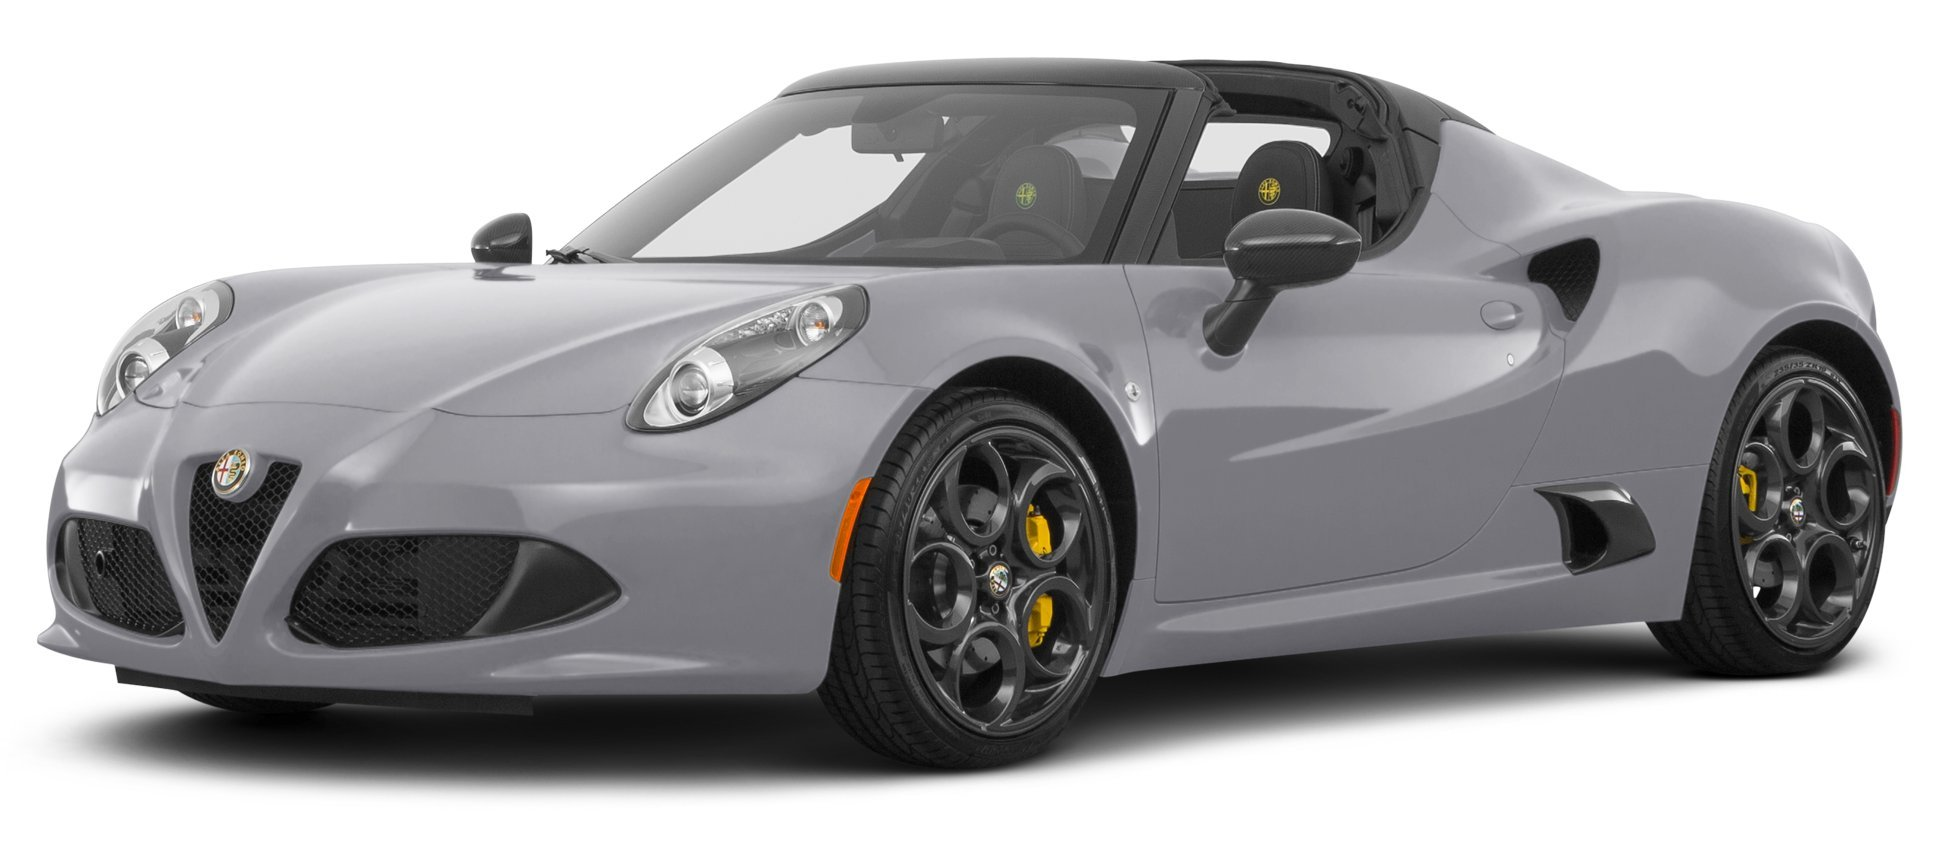 2016 alfa romeo 4c reviews images and specs vehicles. Black Bedroom Furniture Sets. Home Design Ideas